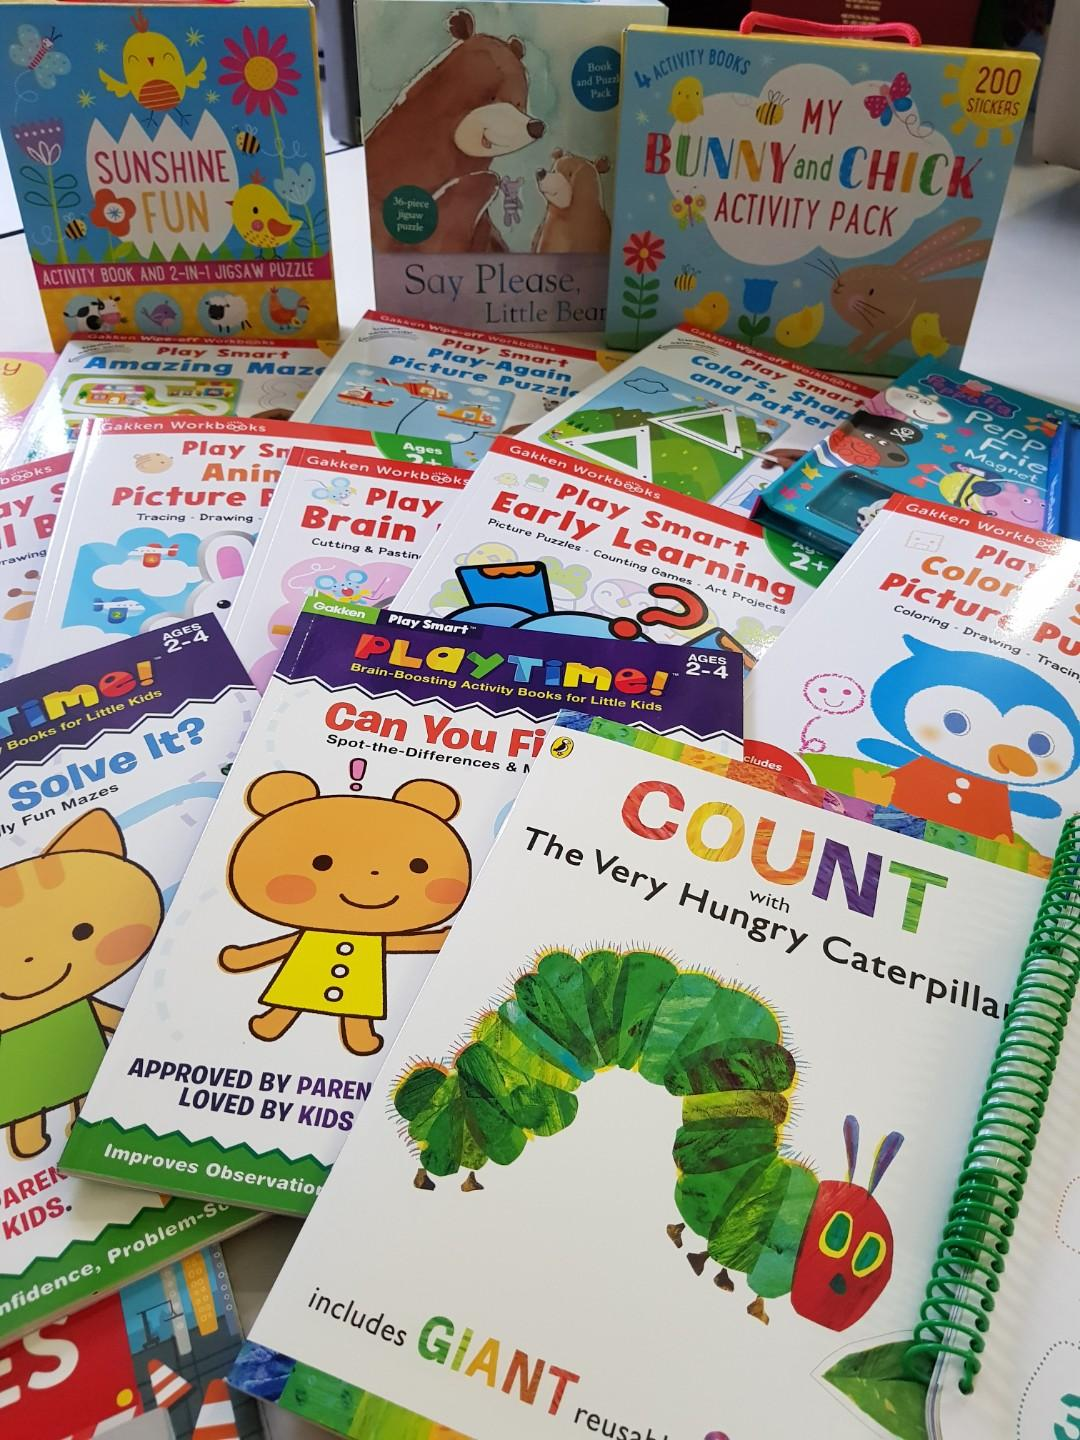 Activity books for 2 years old